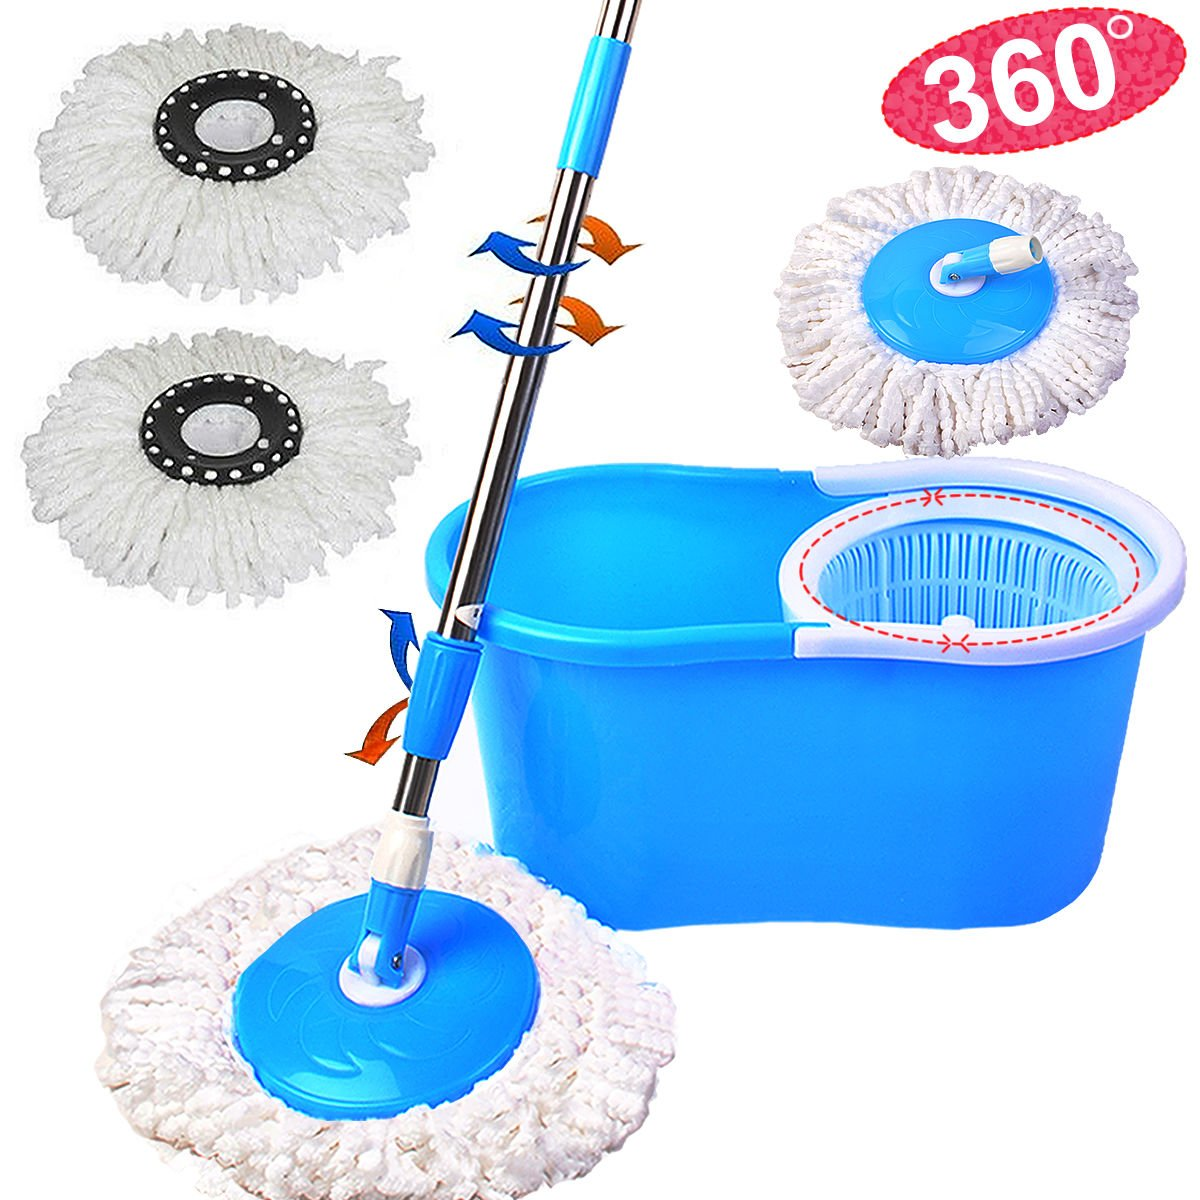 Microfiber Spin Mop Cleaning System - Easy Press Magic Floor Mop Bucket Set with 2 Microfiber Mop Heads - Blue